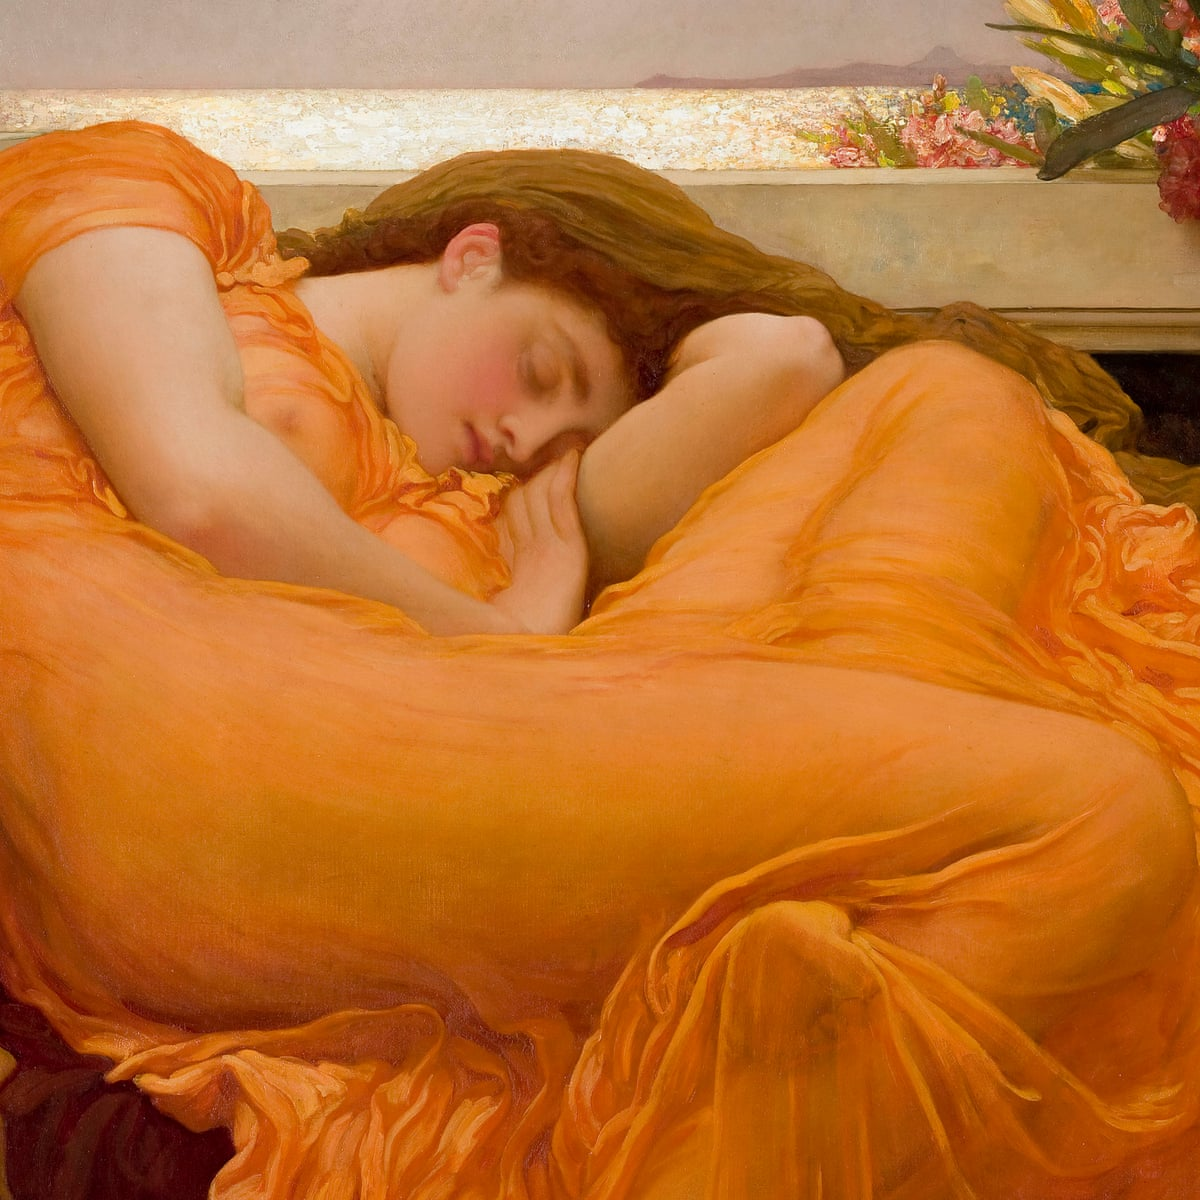 Frederic Leighton S Flaming June The Mona Lisa Of The Southern Hemisphere Art The Guardian